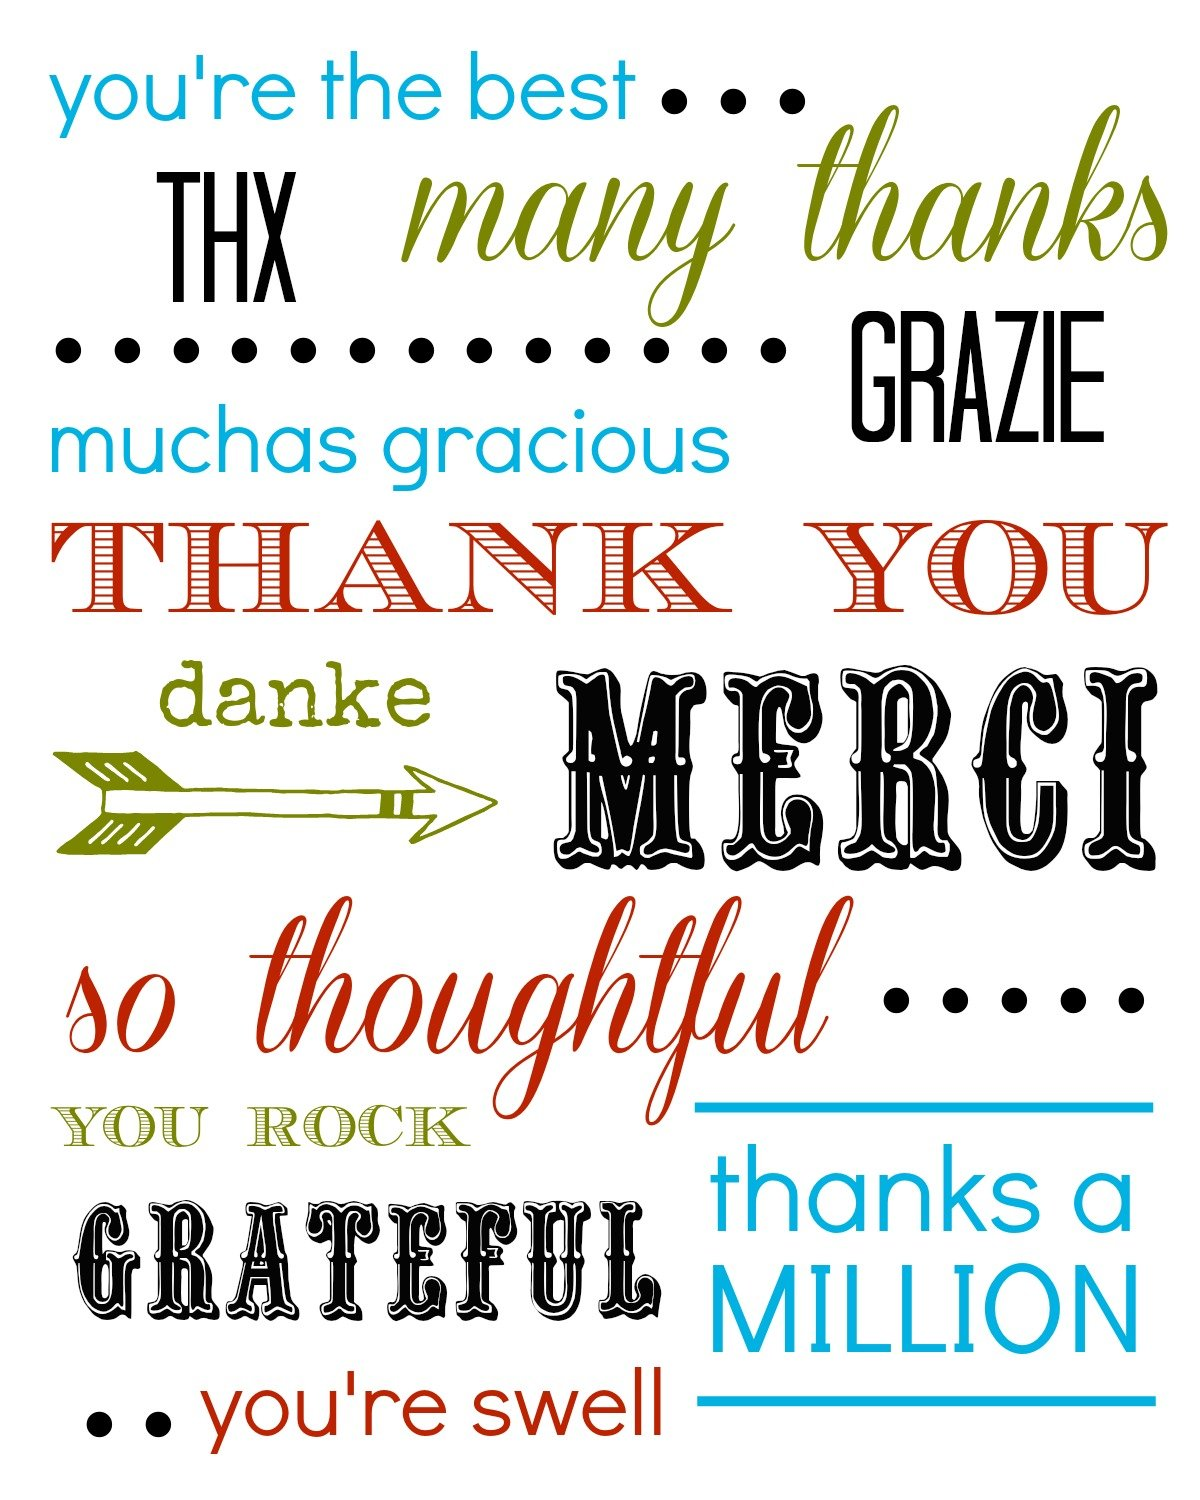 Free Printable: Thank You Card